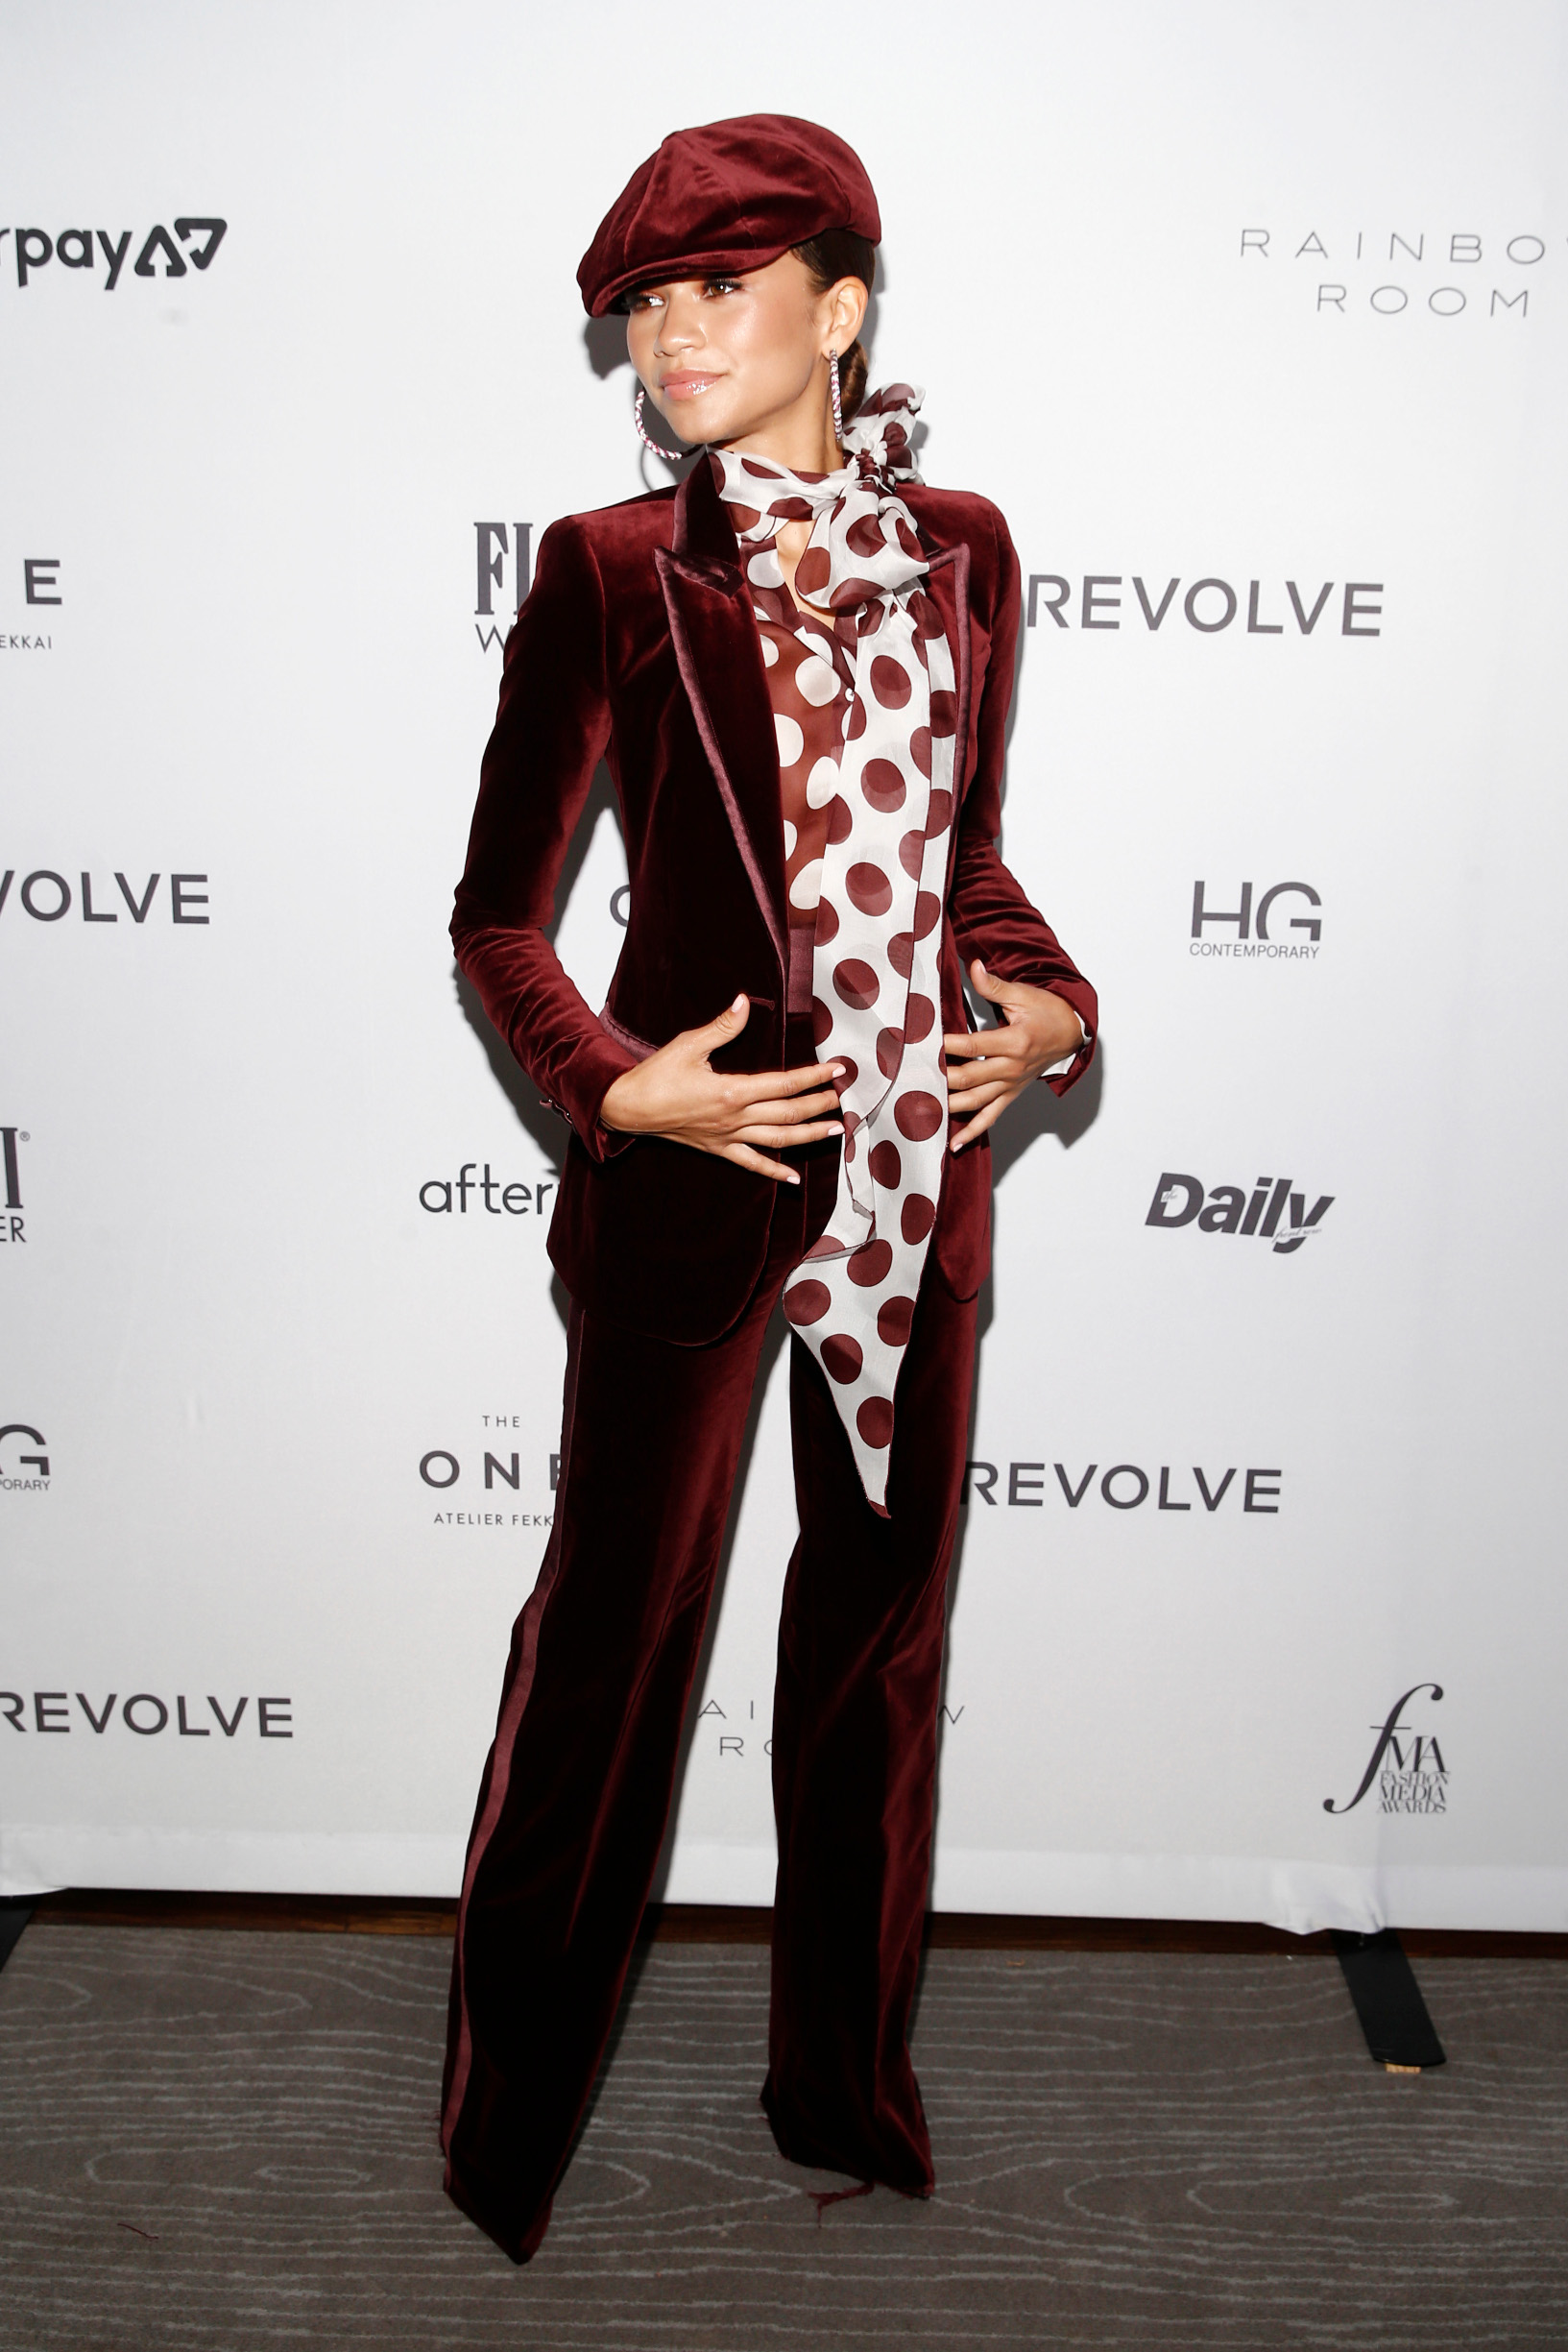 NEW YORK, NEW YORK - SEPTEMBER 05: Zendaya attends The Daily Front Row's 7th annual Fashion Media Awards on September 05, 2019 in New York City. (Photo by Brian Ach/Getty Images  for Daily Front Row, Inc.)